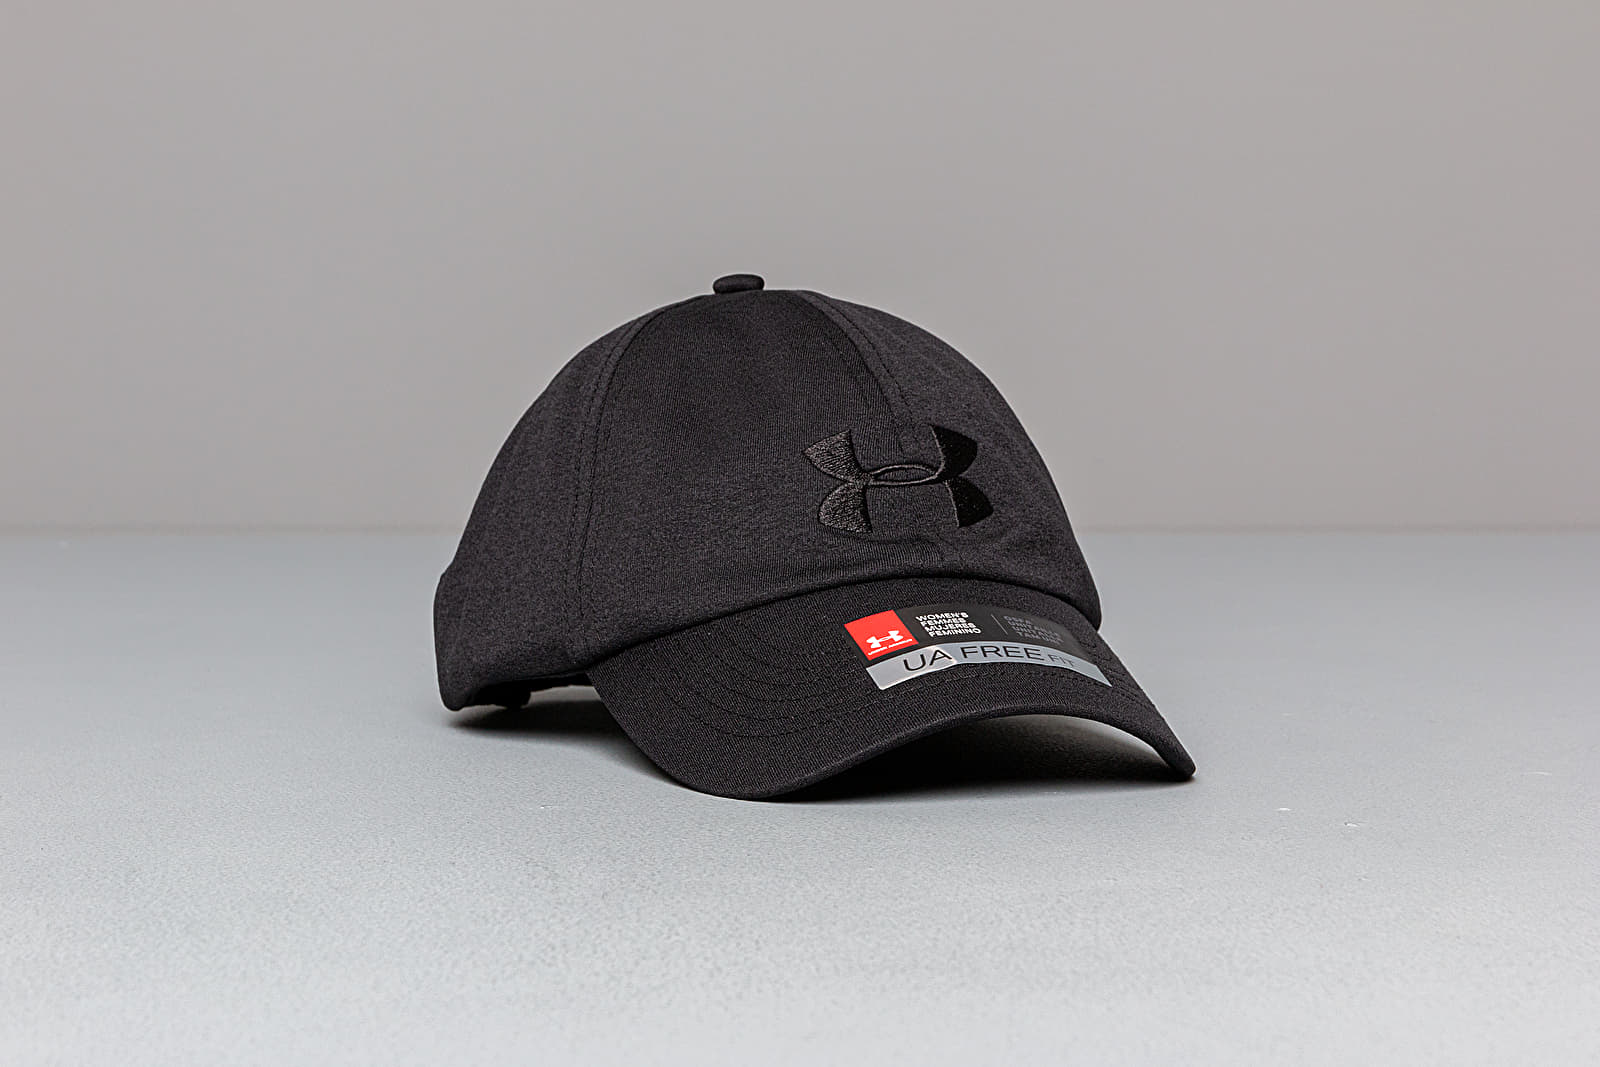 Caps Under Armour Cap Black